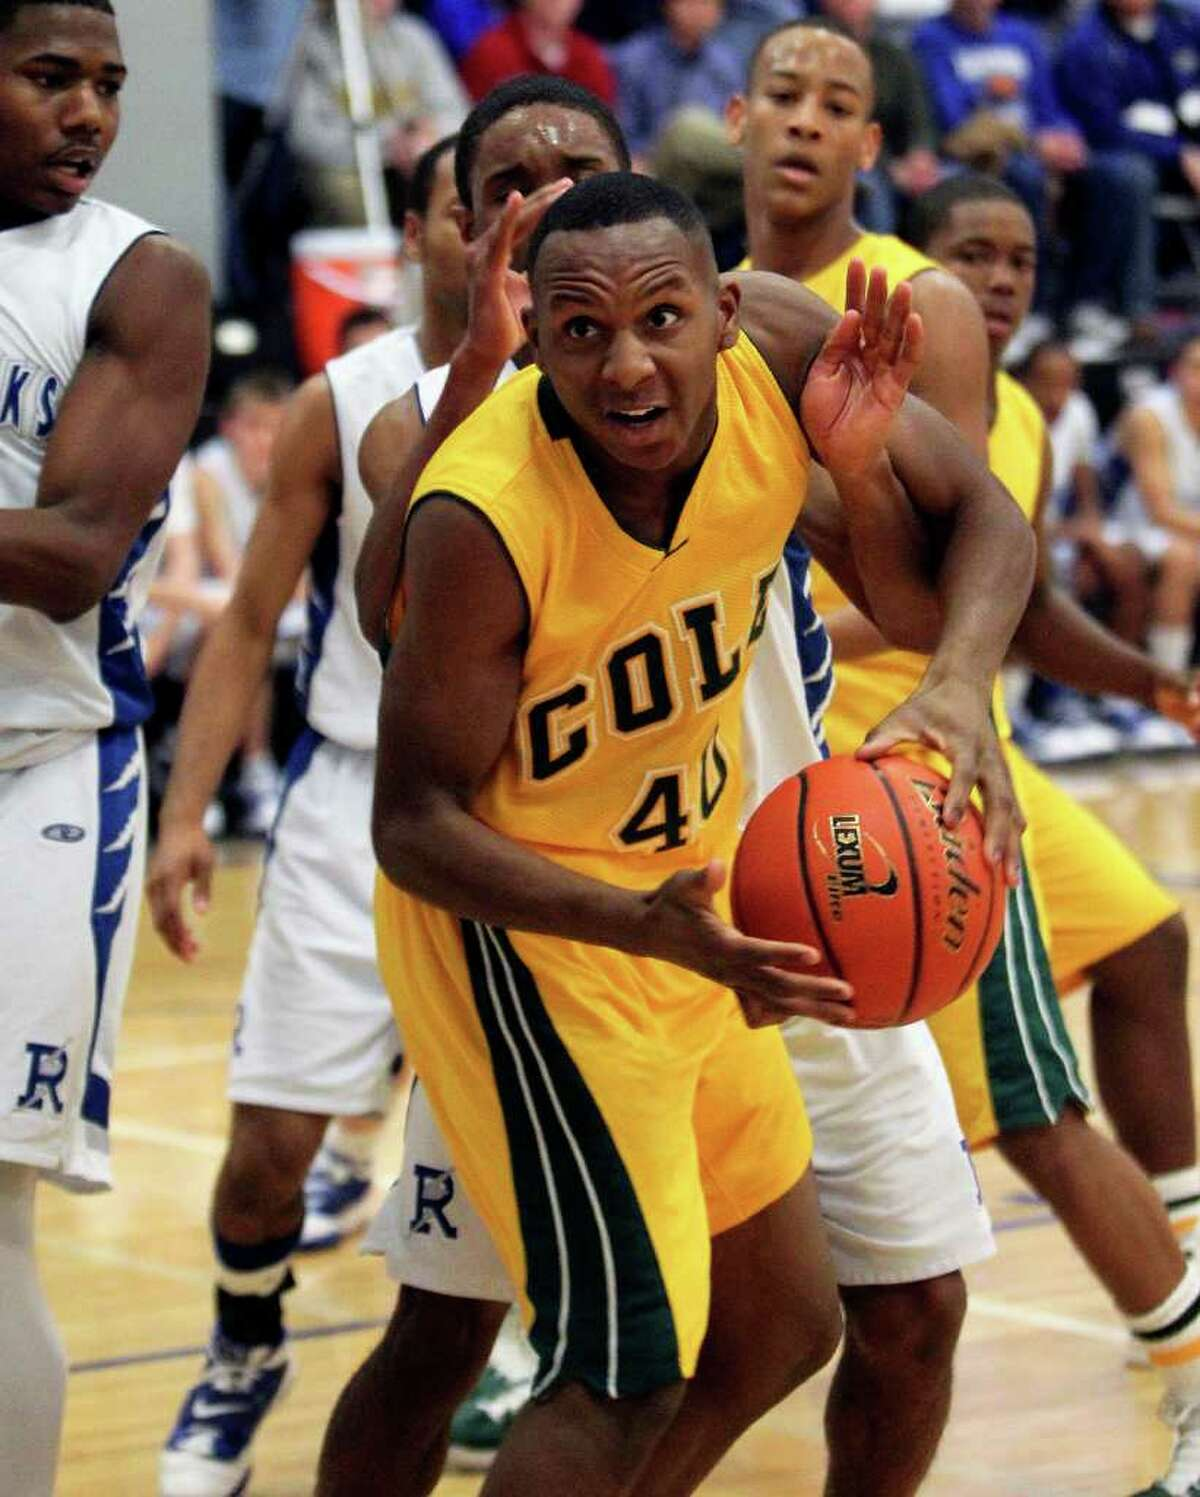 SPORTS Cole forward Kendrick Taylor (40) goes up against tight defense in the lane as Randolph hosts Cole at Randolph gym in boys basketball on February 11, 2011. Tom Reel/Staff